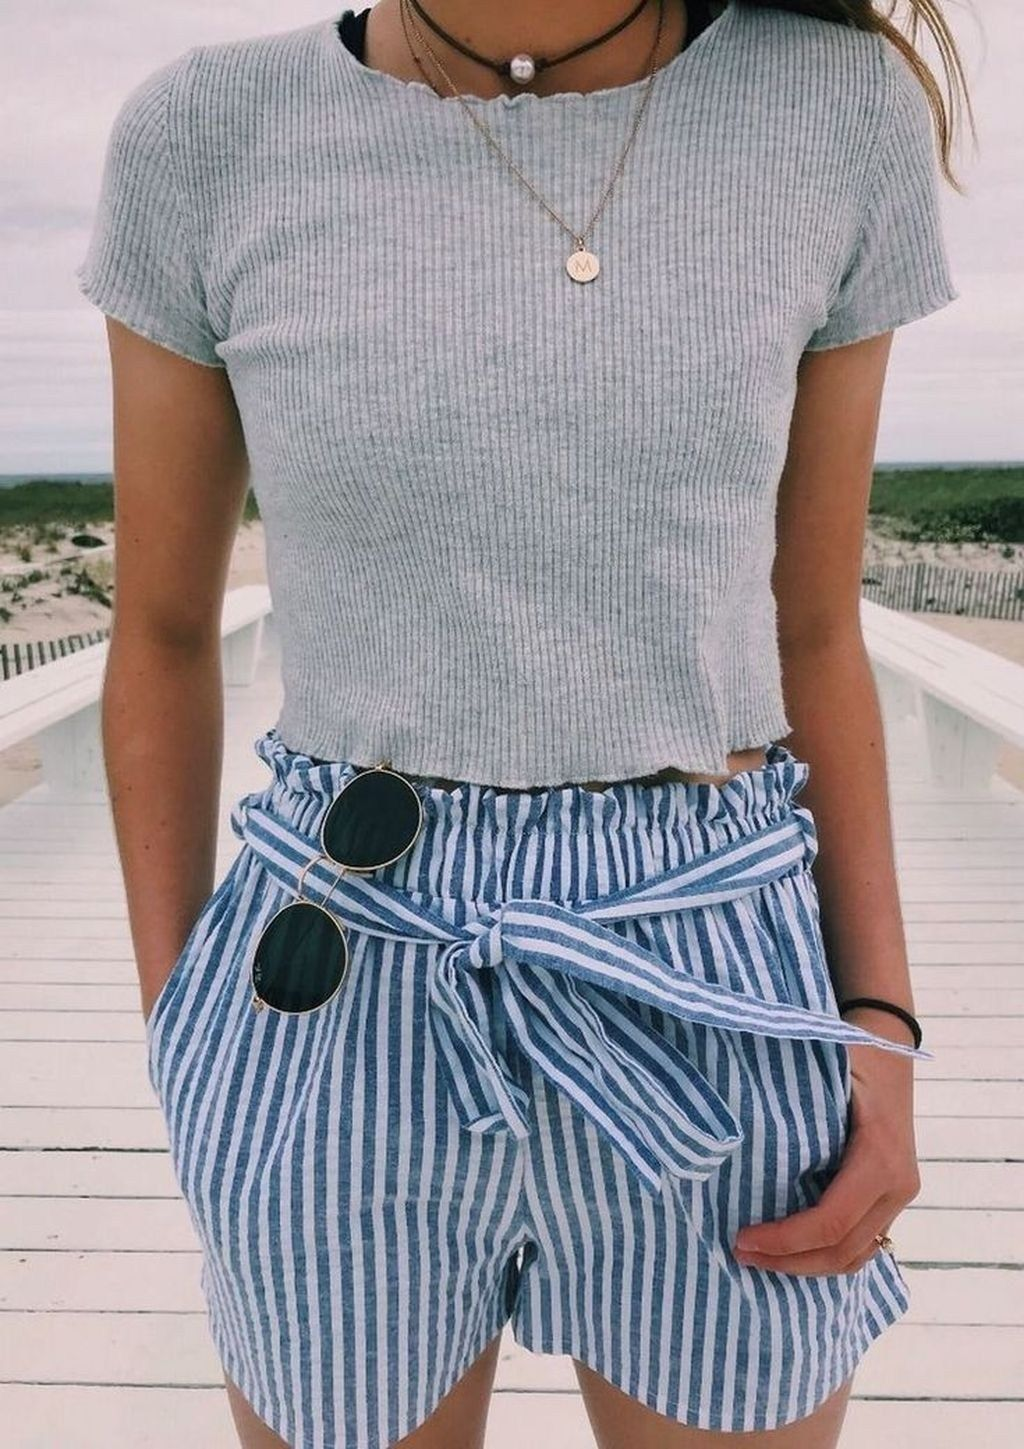 49 Cool Summer Outfits Ideas For You